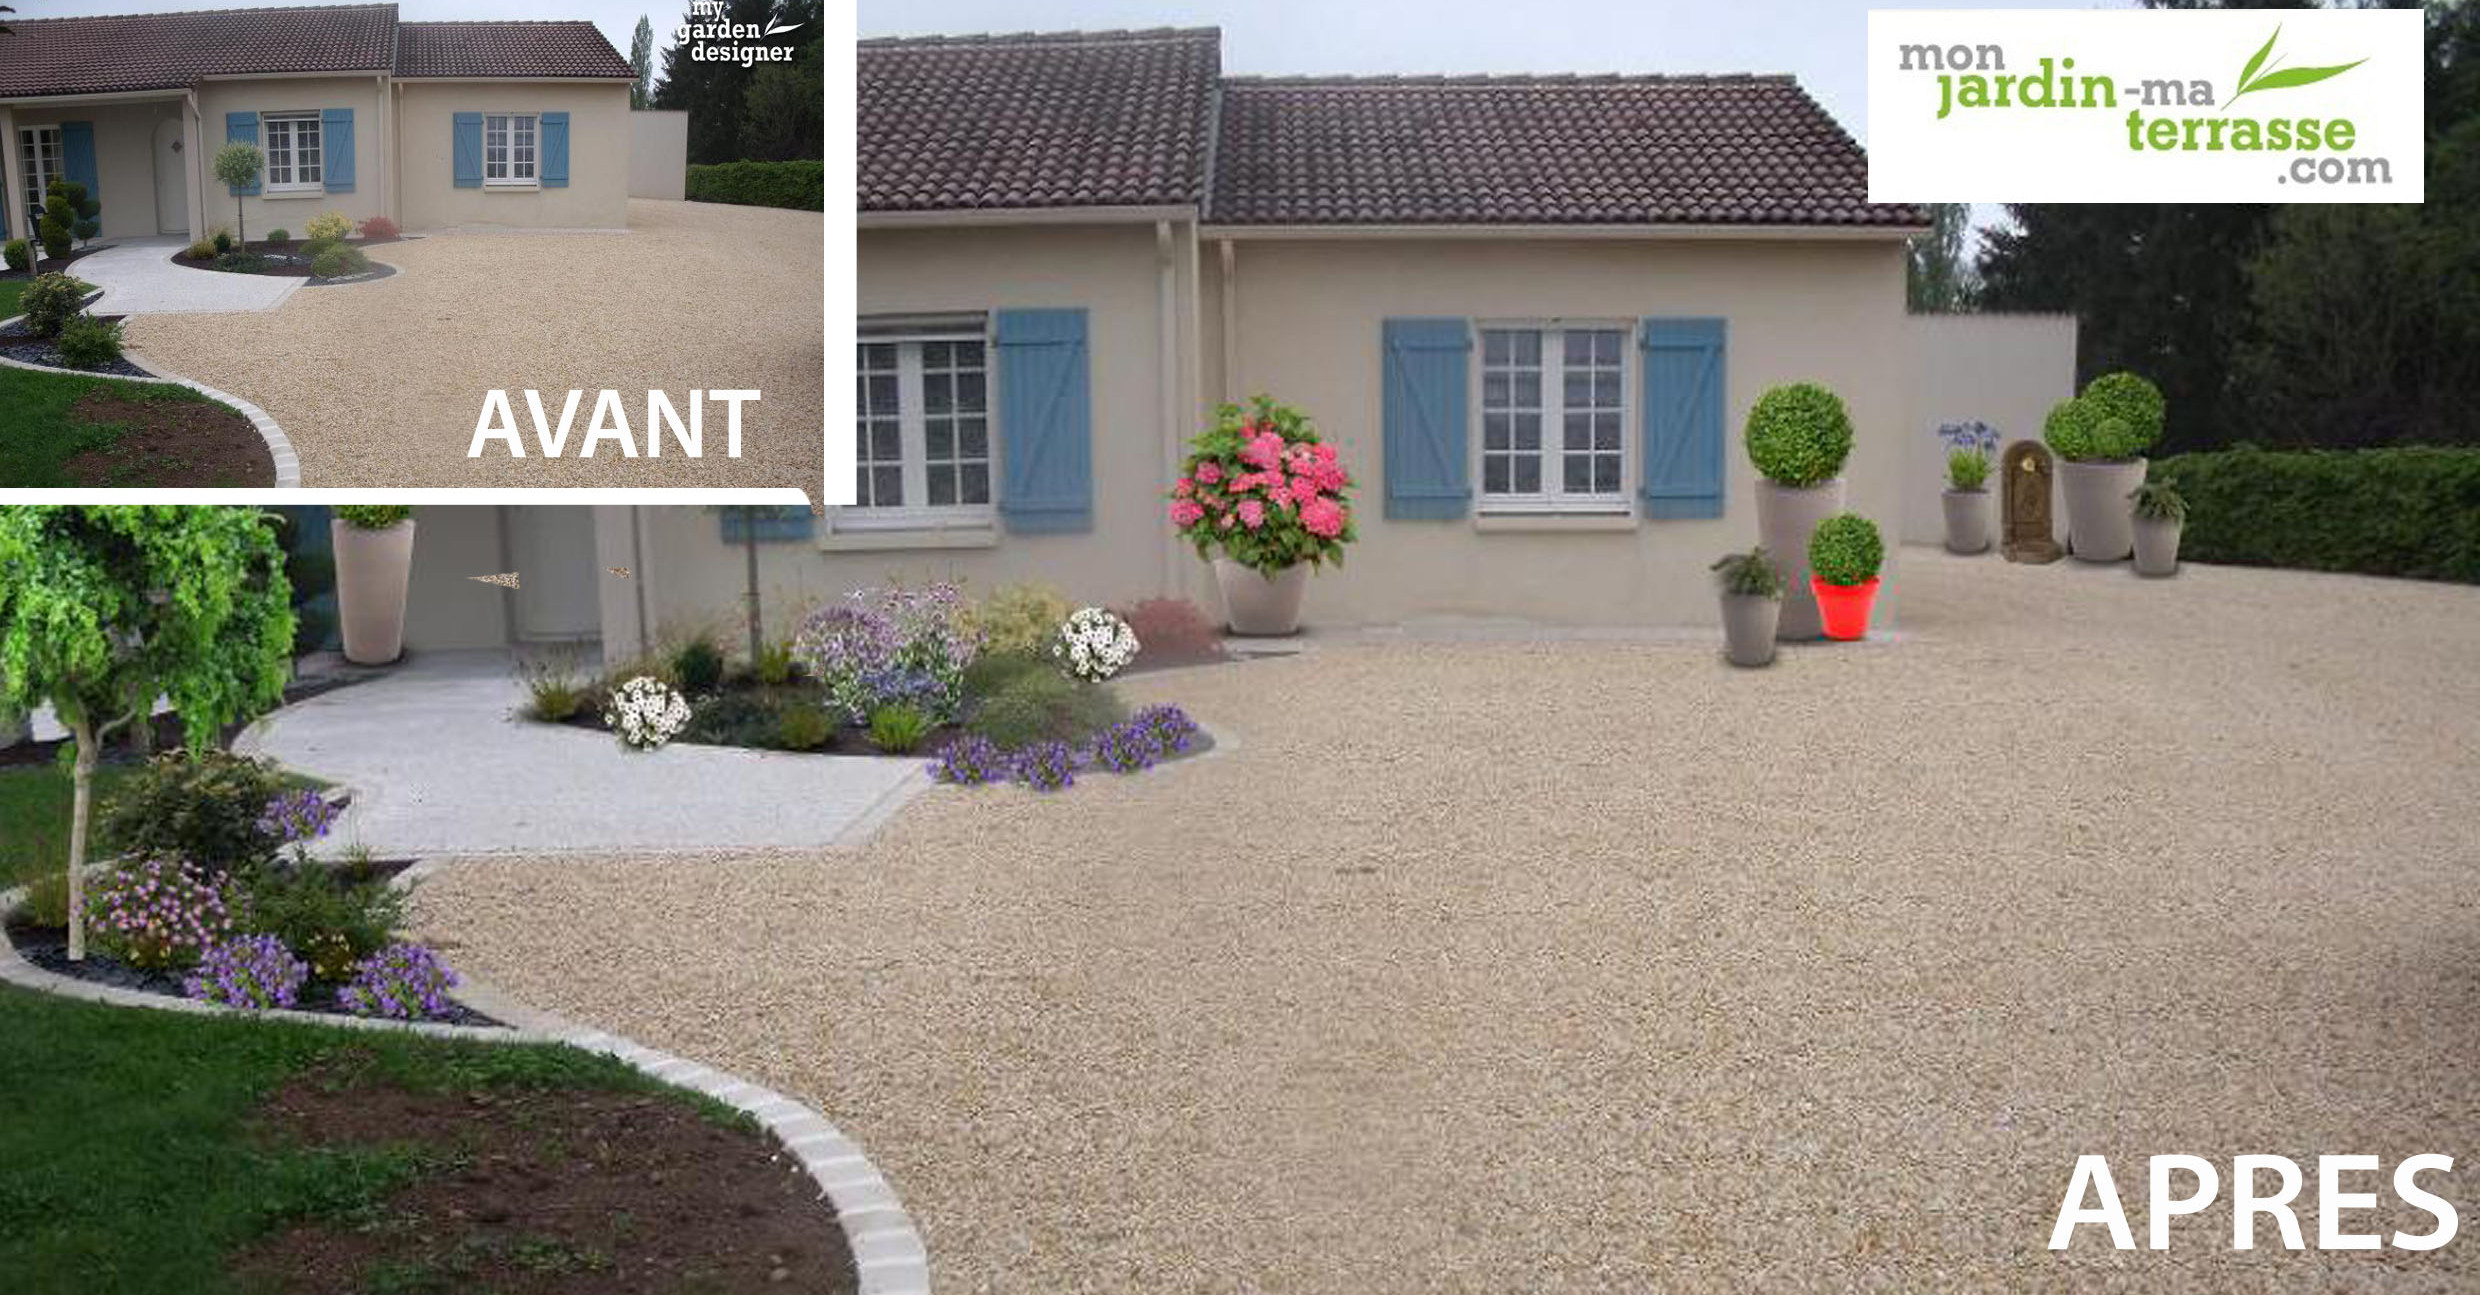 Id e d am nagement d une entr e de maison monjardin for Amenagement petite entree maison